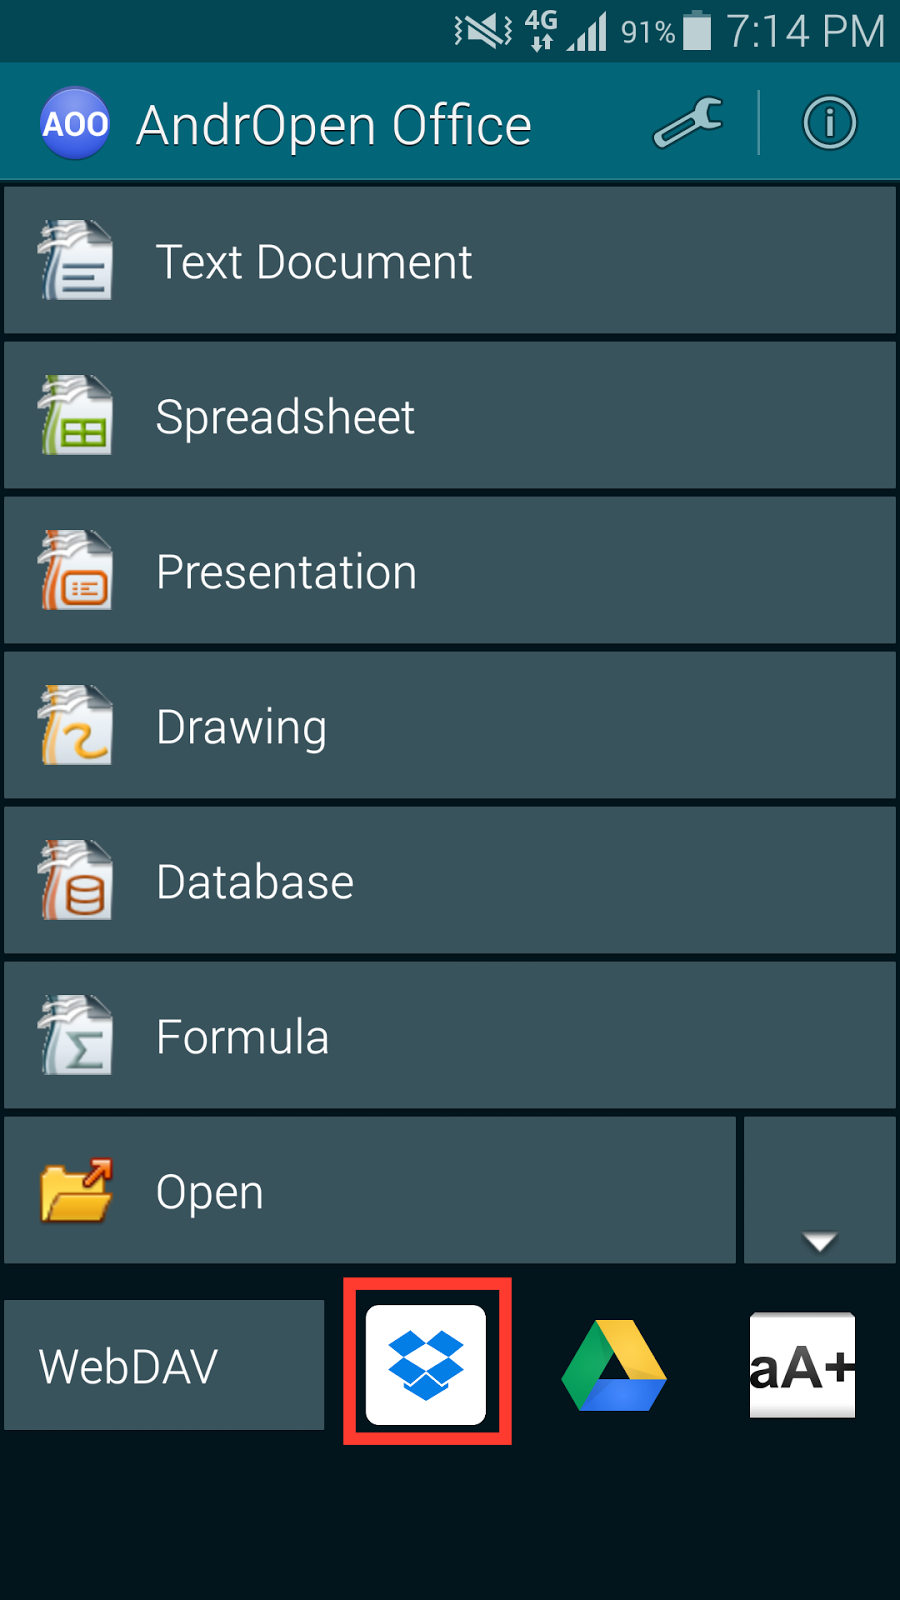 andropen office 1.4.6